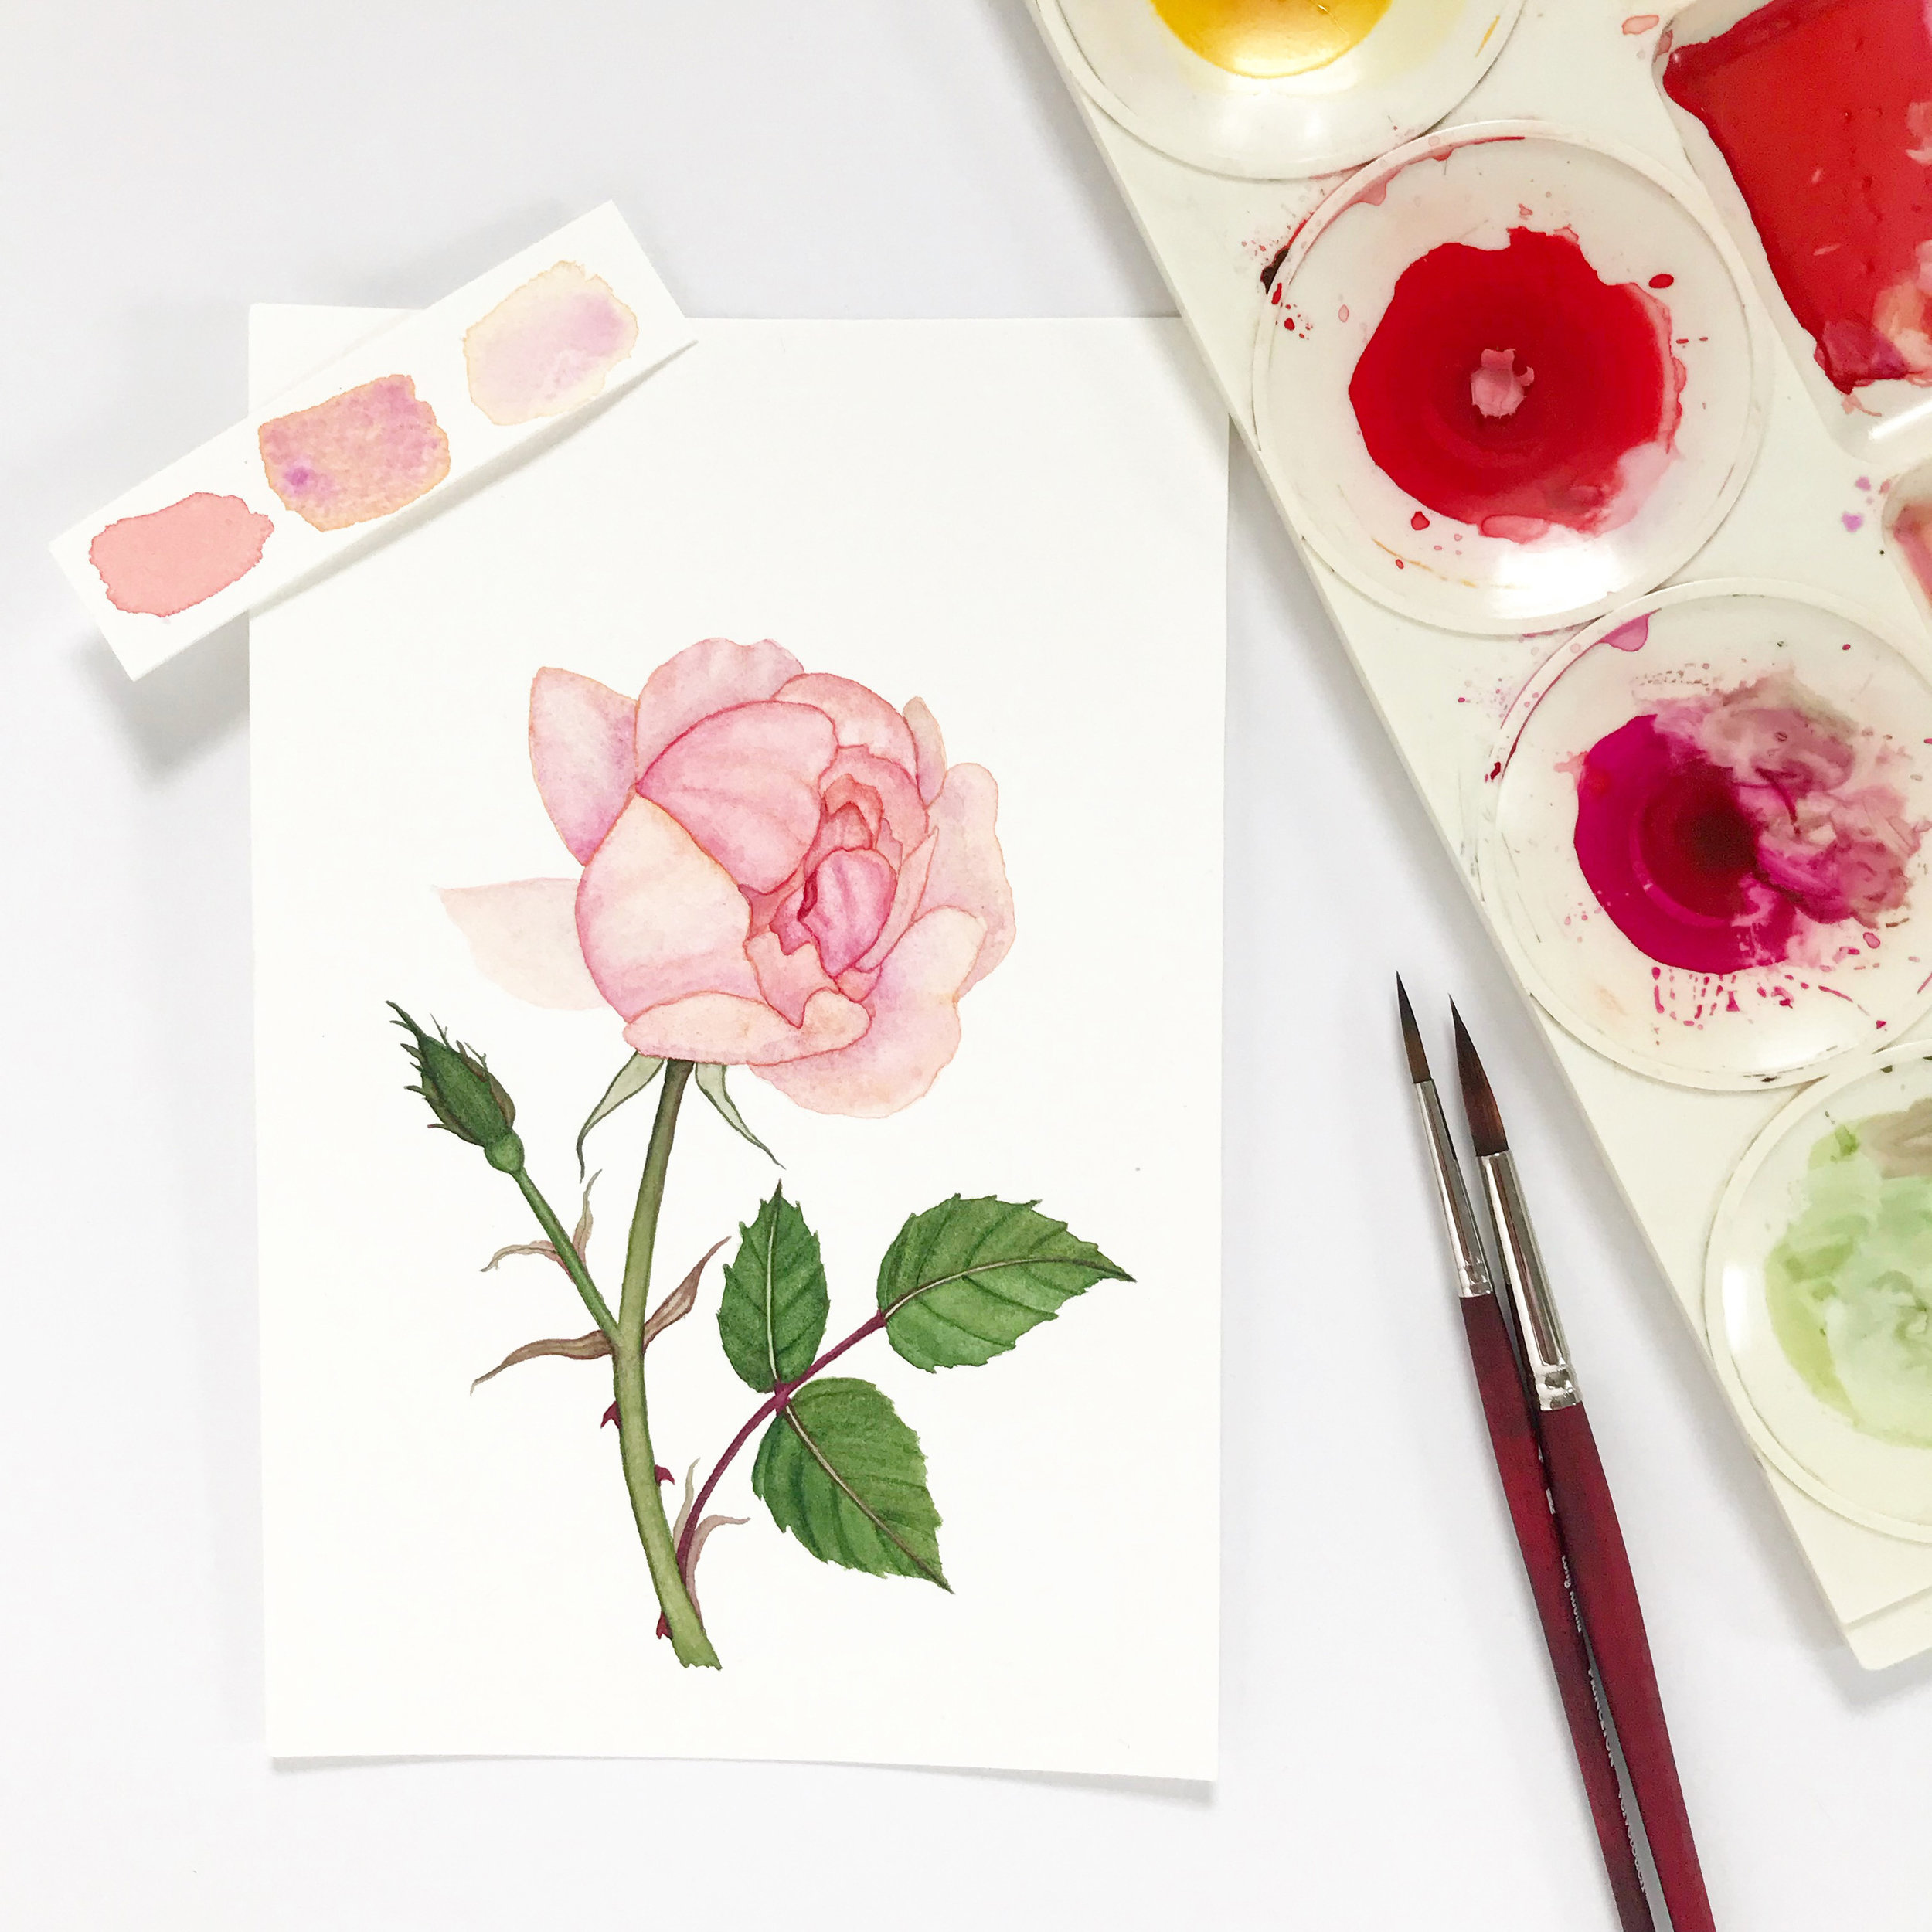 Sometimes I have to paint something just to paint it and the watercolor brings me joy